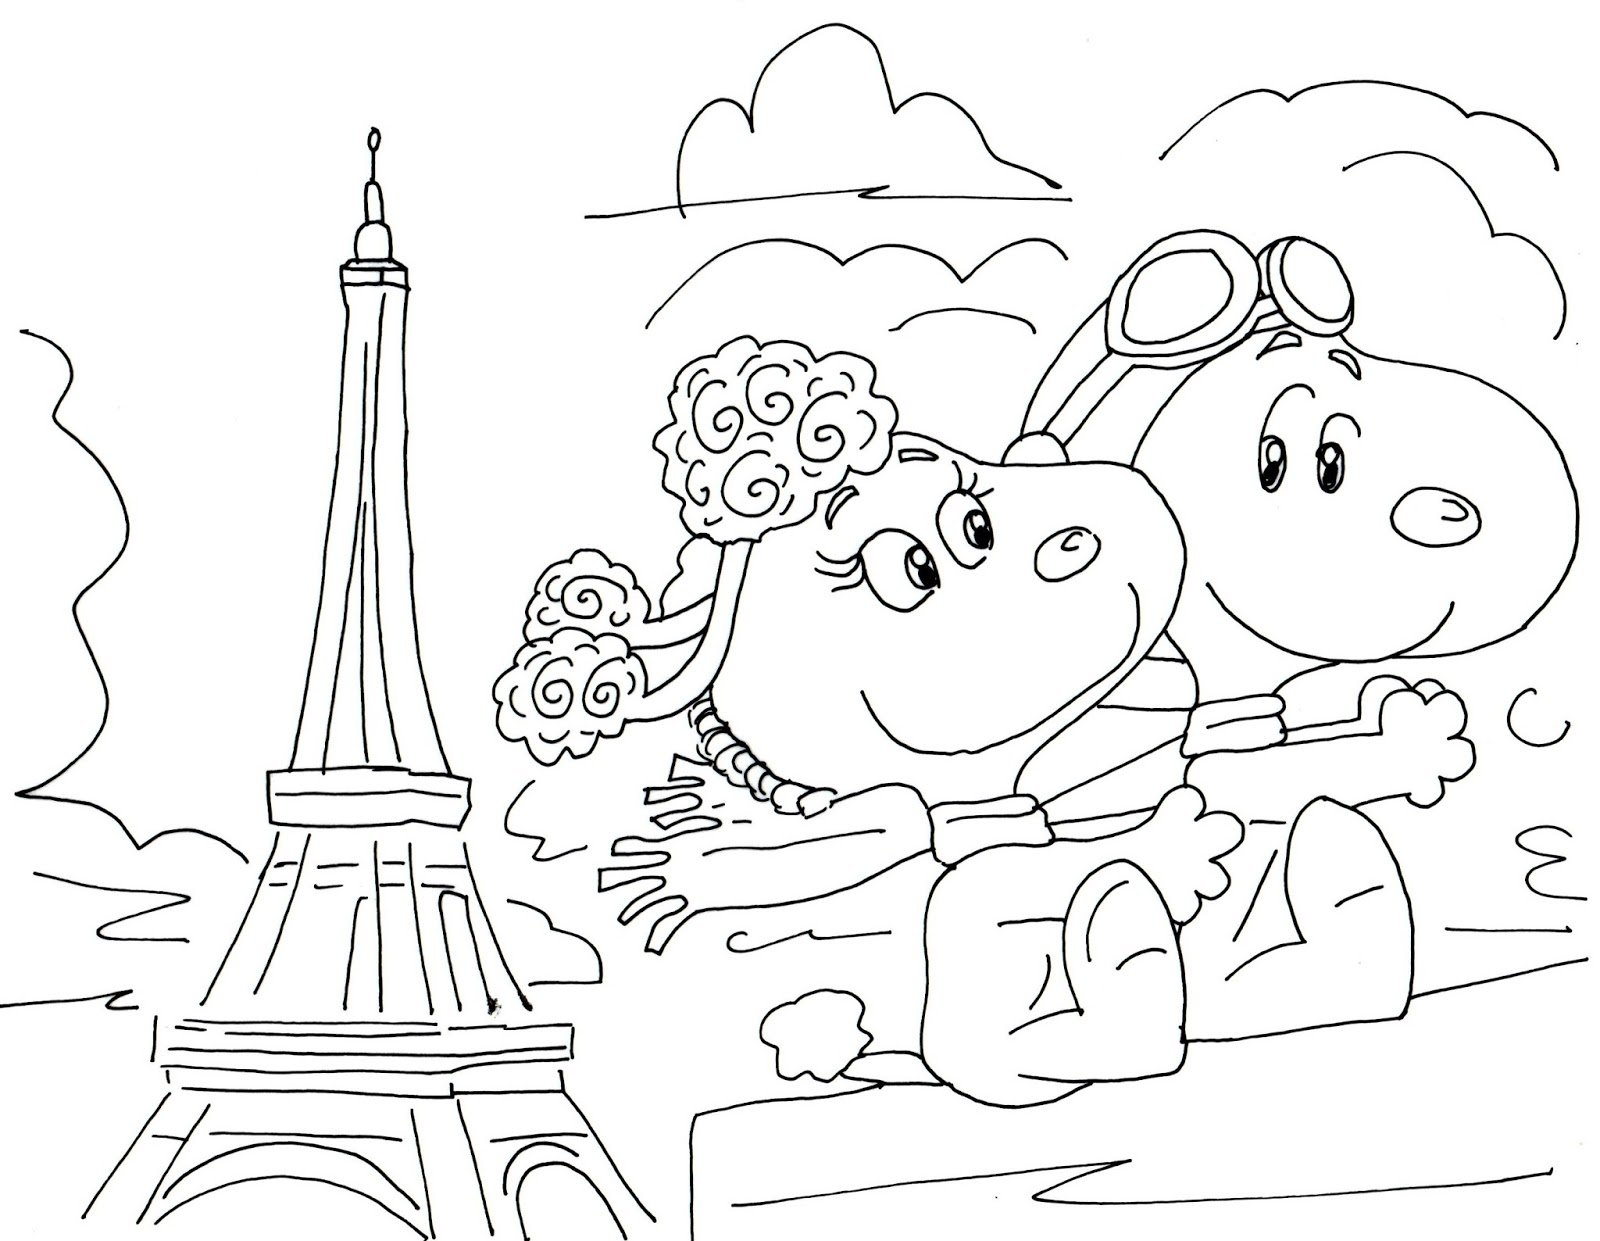 Free Charlie Brown Snoopy And Peanuts Coloring Pages: Fifi Free Printable Snoopy Images